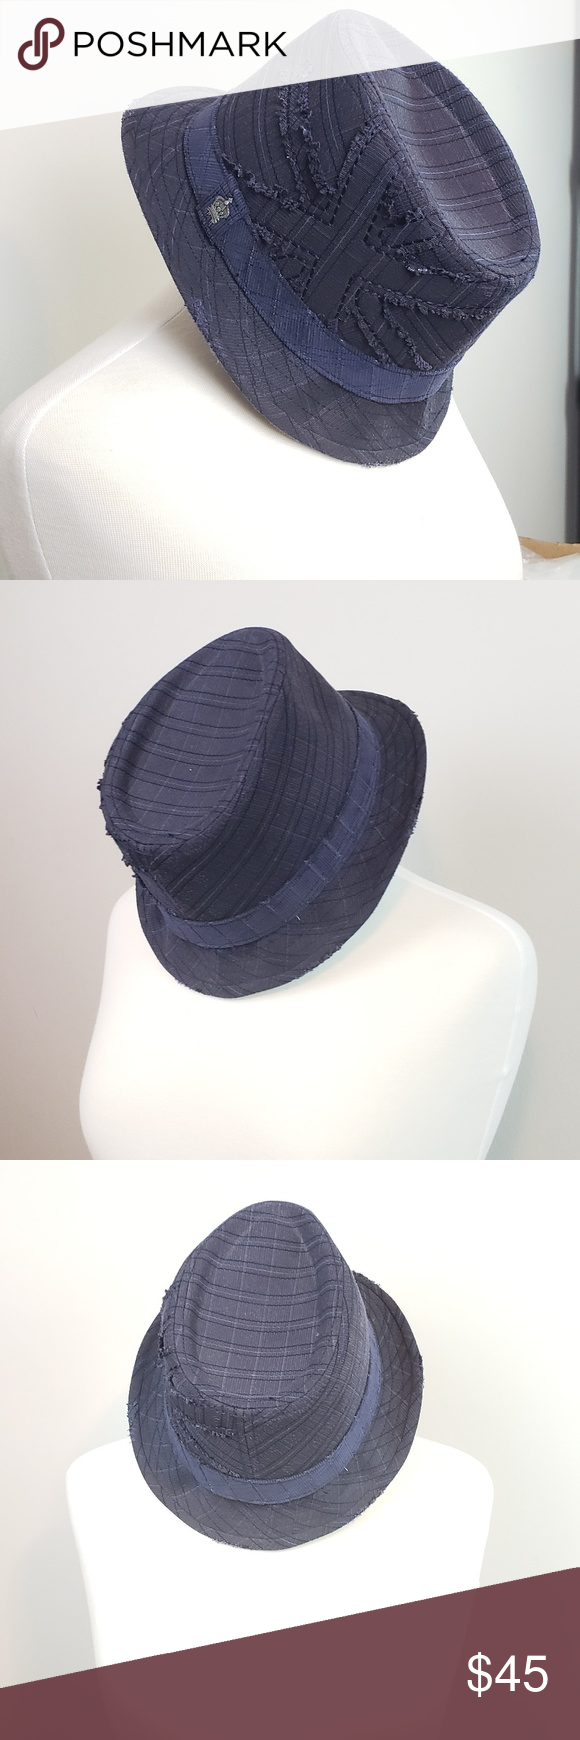 a02e5933114c0 Christys Crown Series Blue Fedora by Tony Merenda Christys Crown Series  Blue Fedora by Tony Merenda. No flaws. Size Medium. Circumference 24 inches.